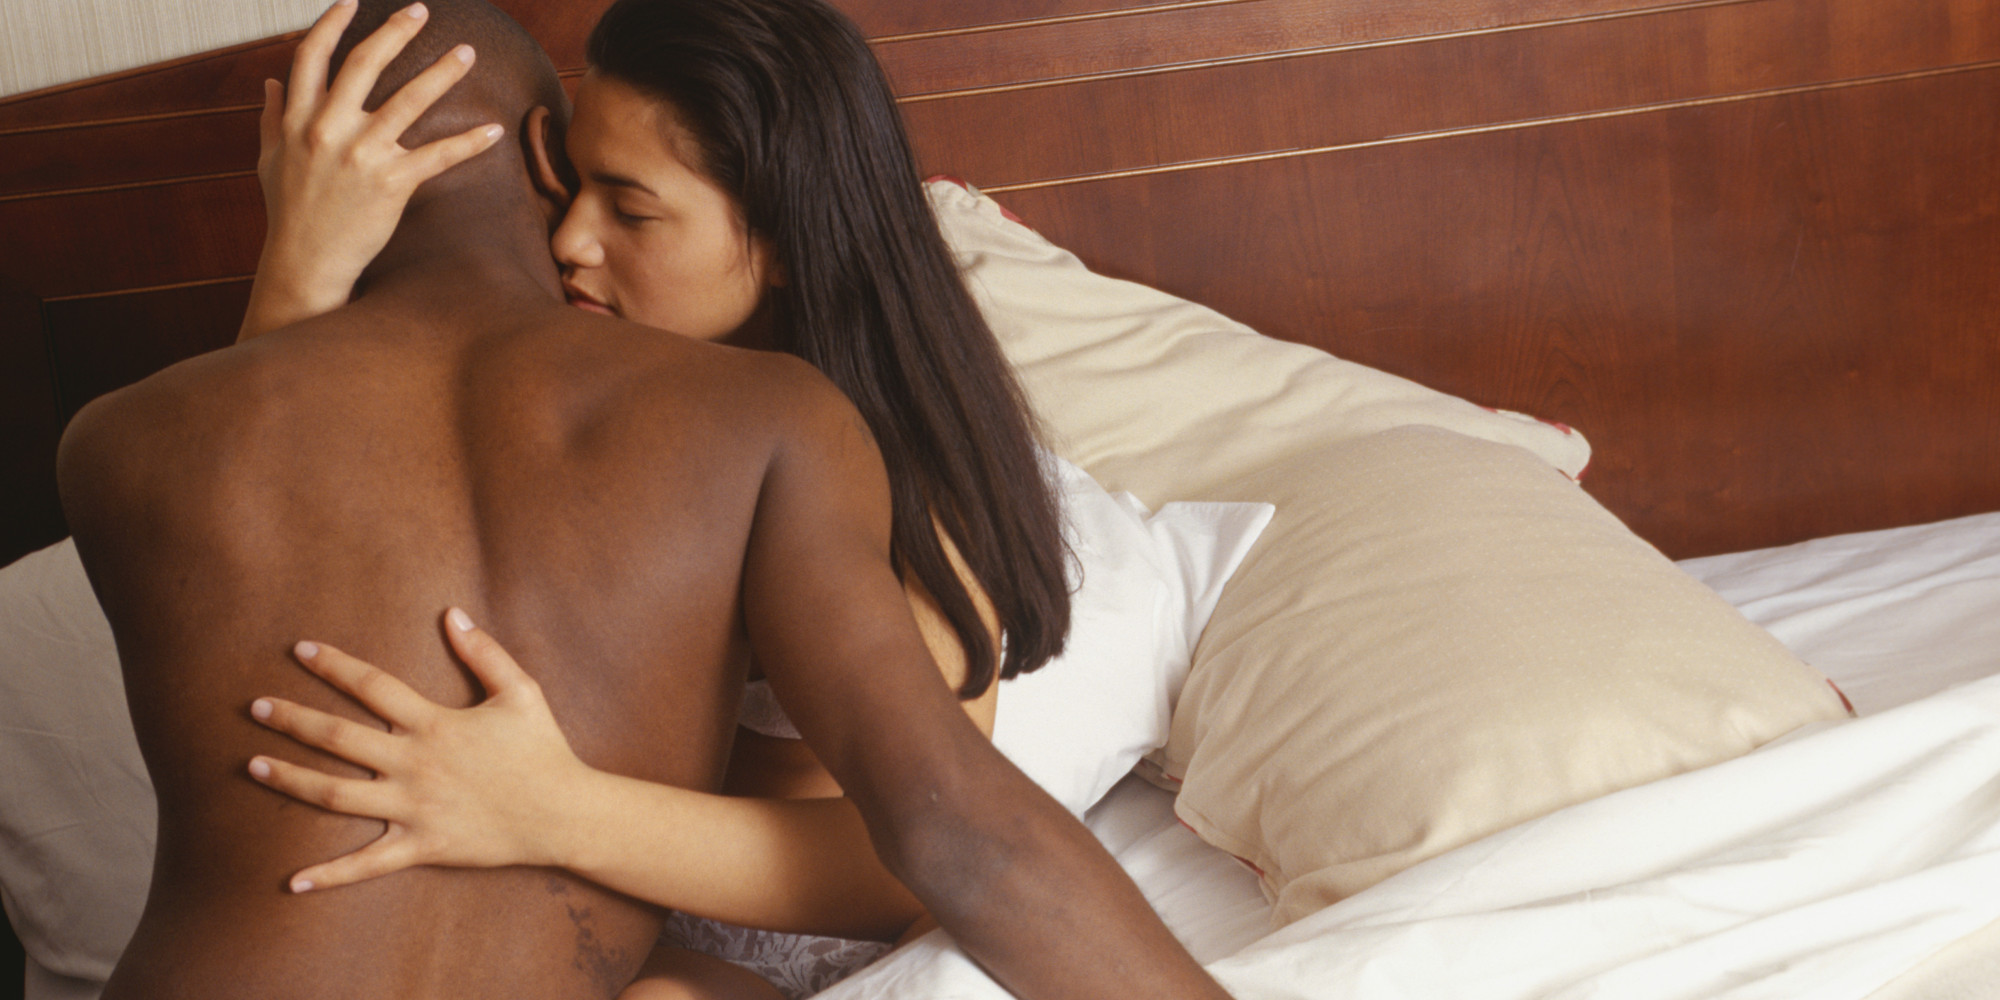 Black Man Woman Having Sex 67